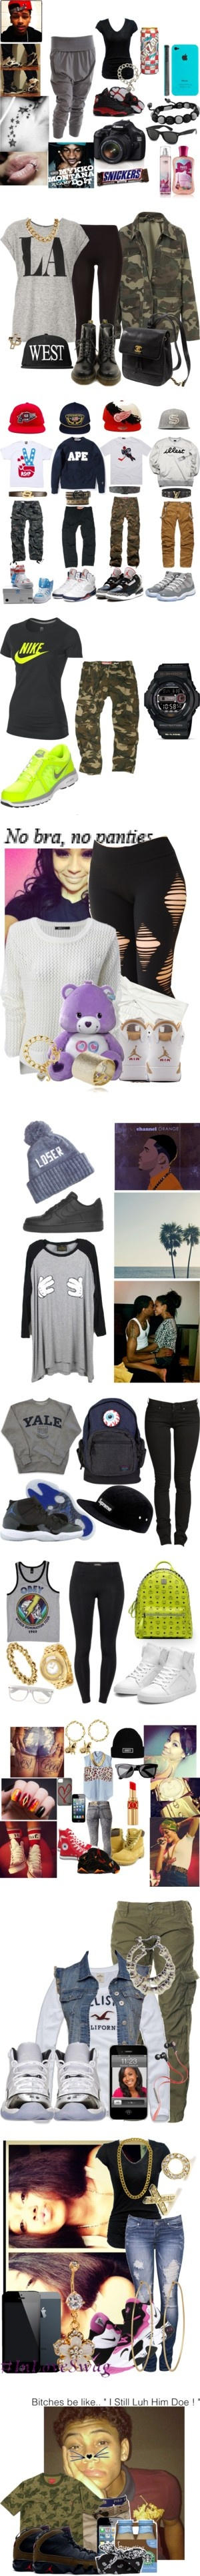 """Dope Part. 3."" by mrkr-lawson ❤ liked on Polyvore"